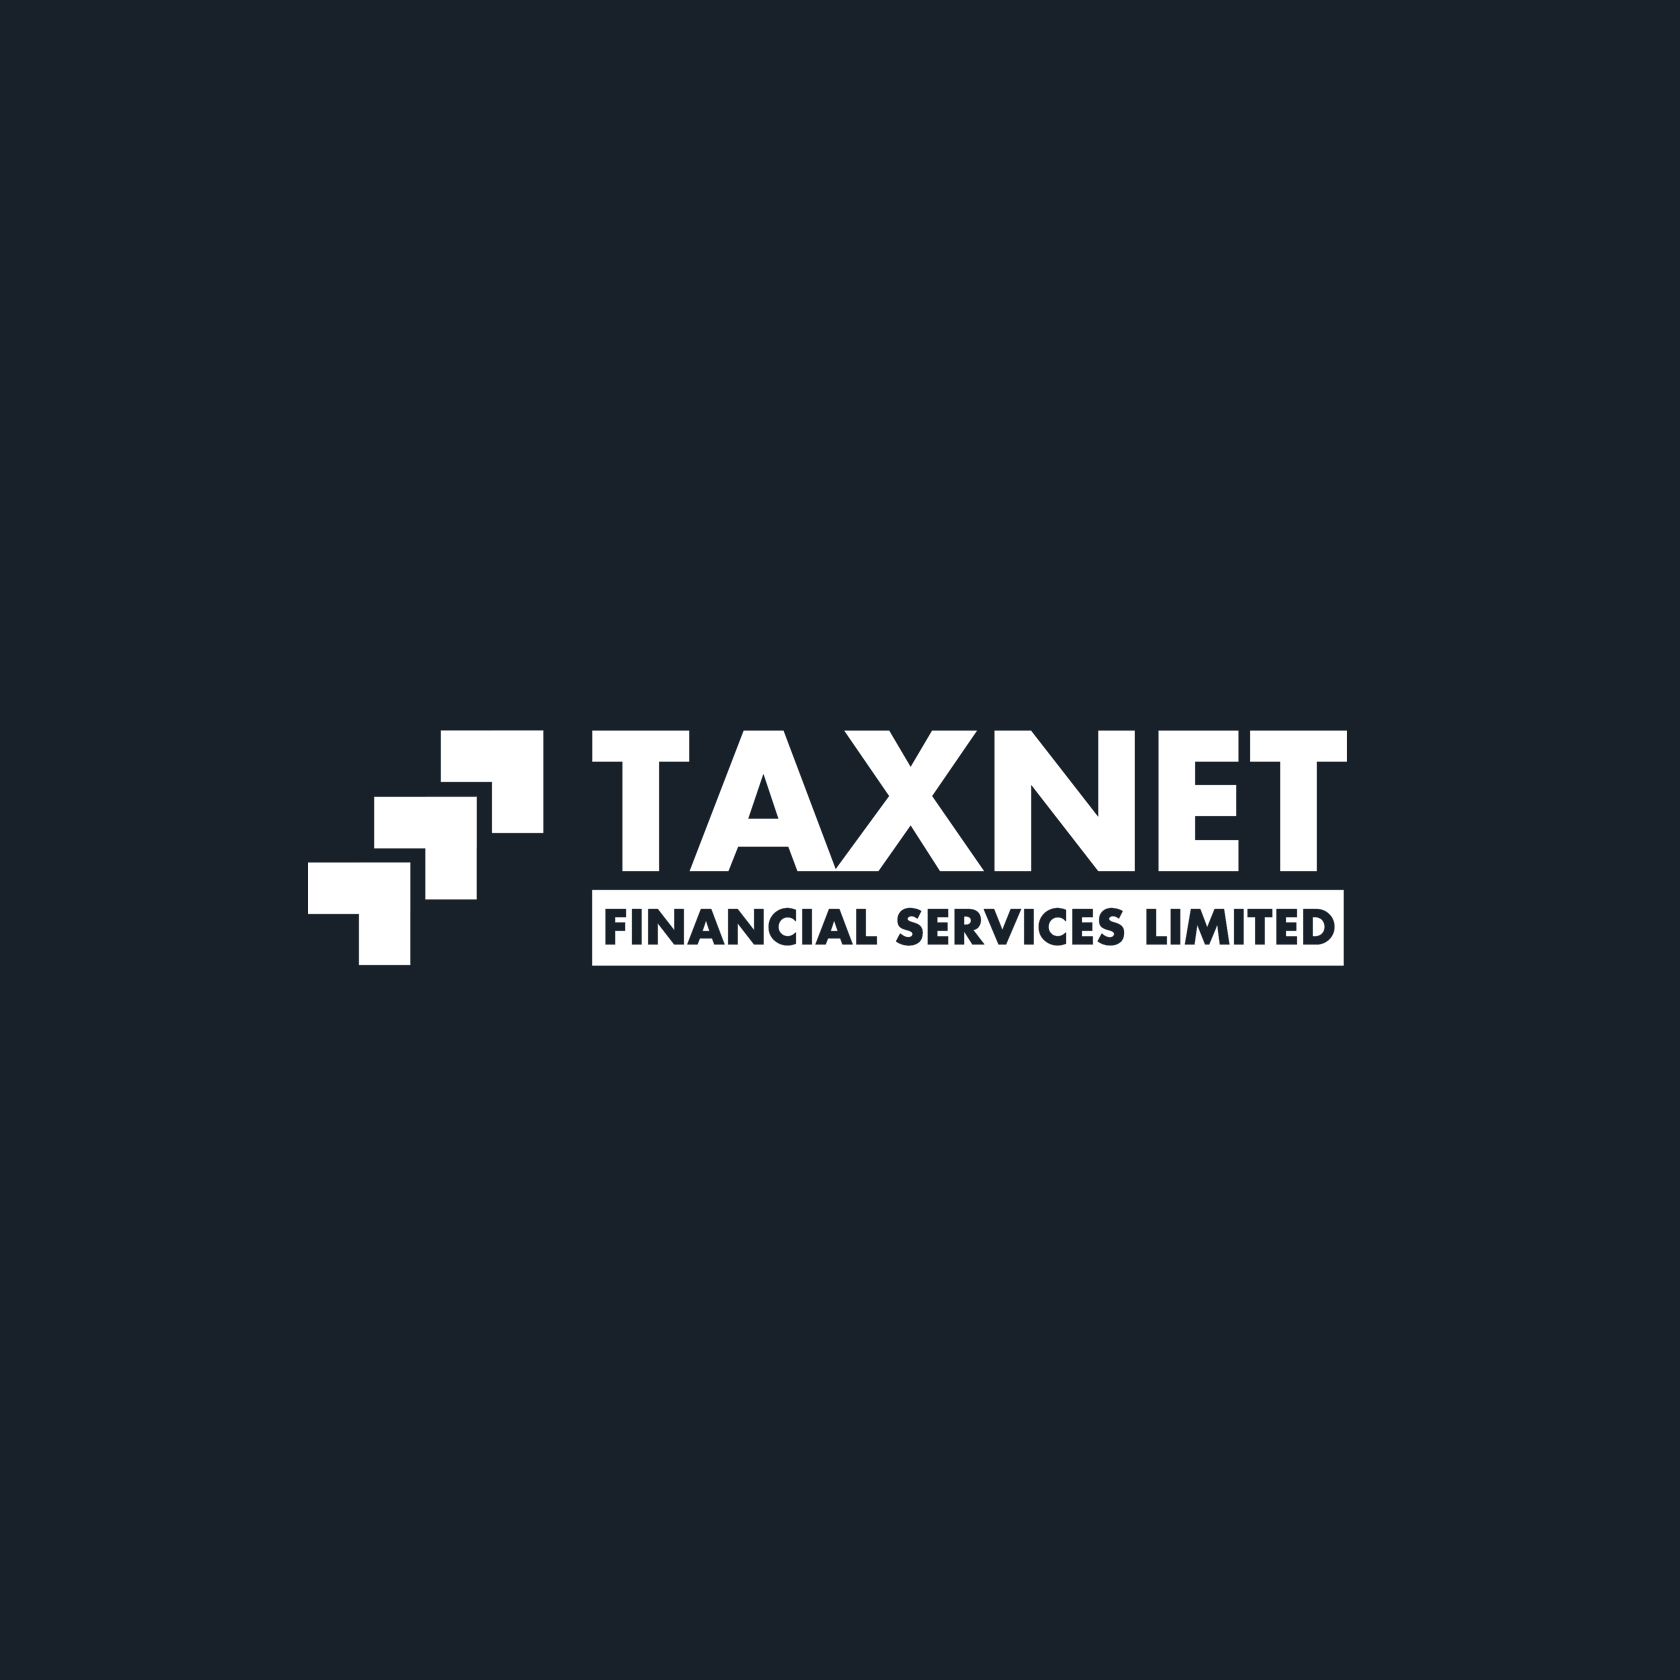 Taxnet Financial services logo